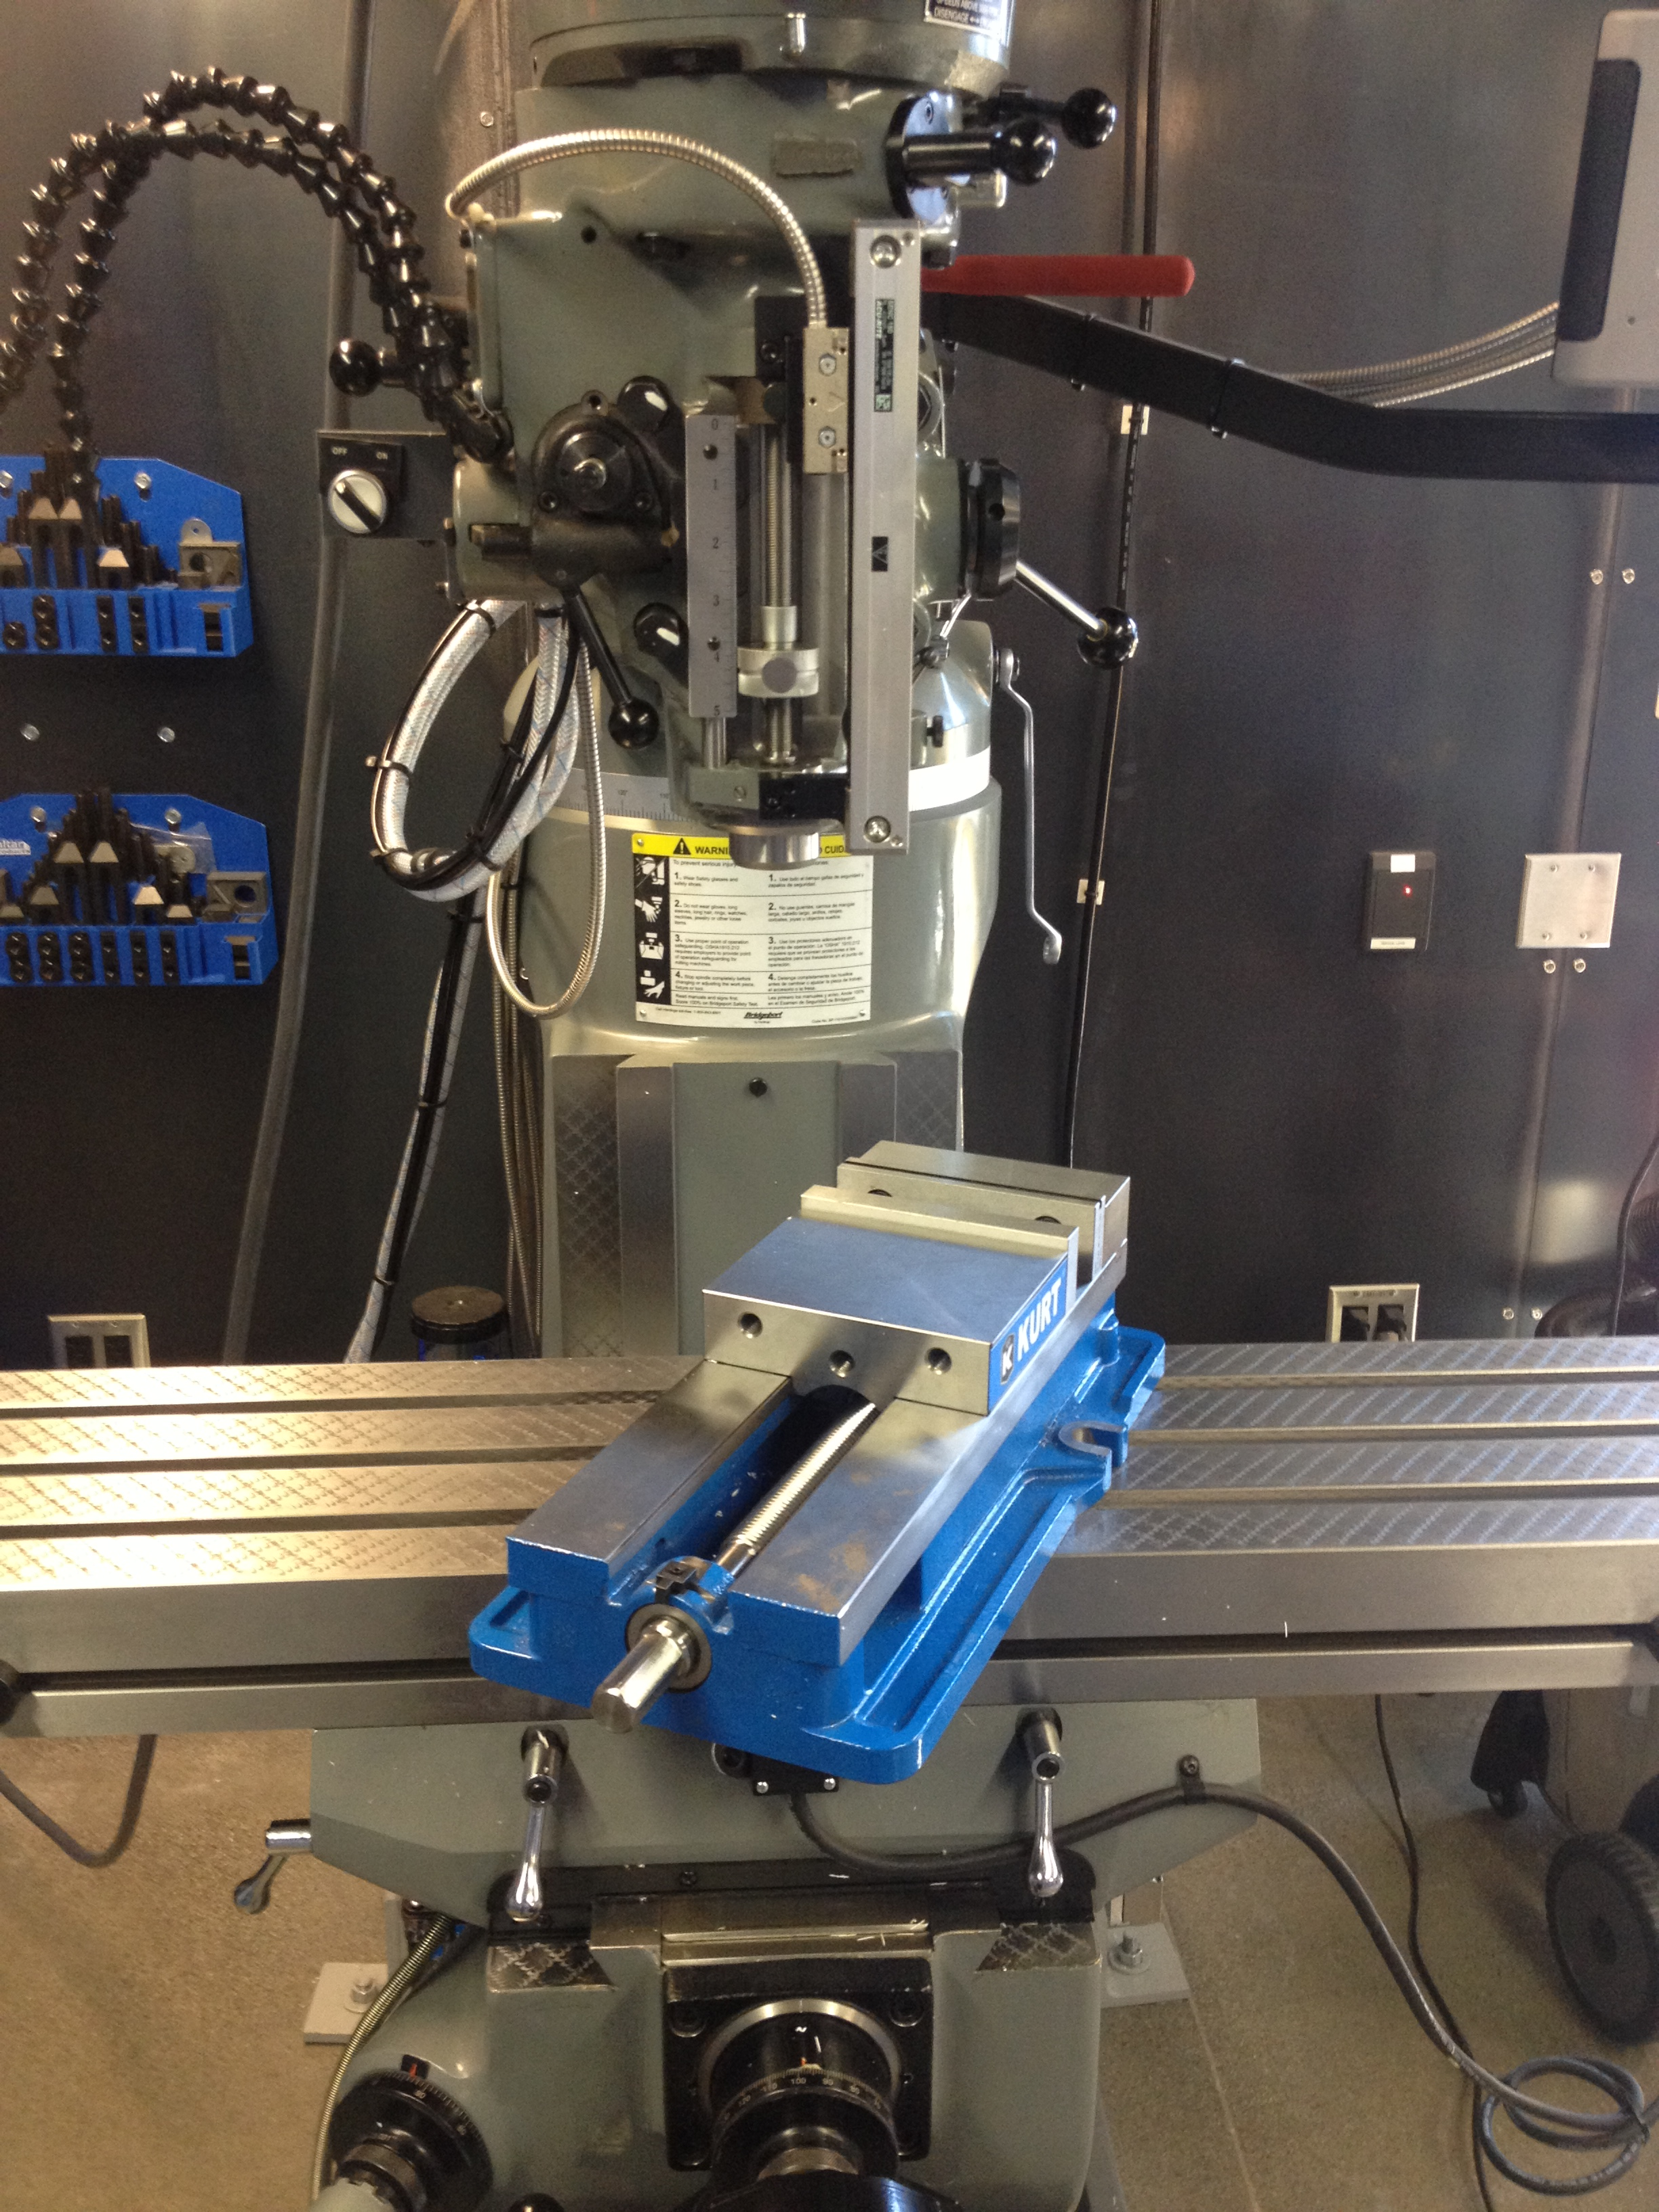 Squaring a Vise on a Mill - Machine Like a Pro